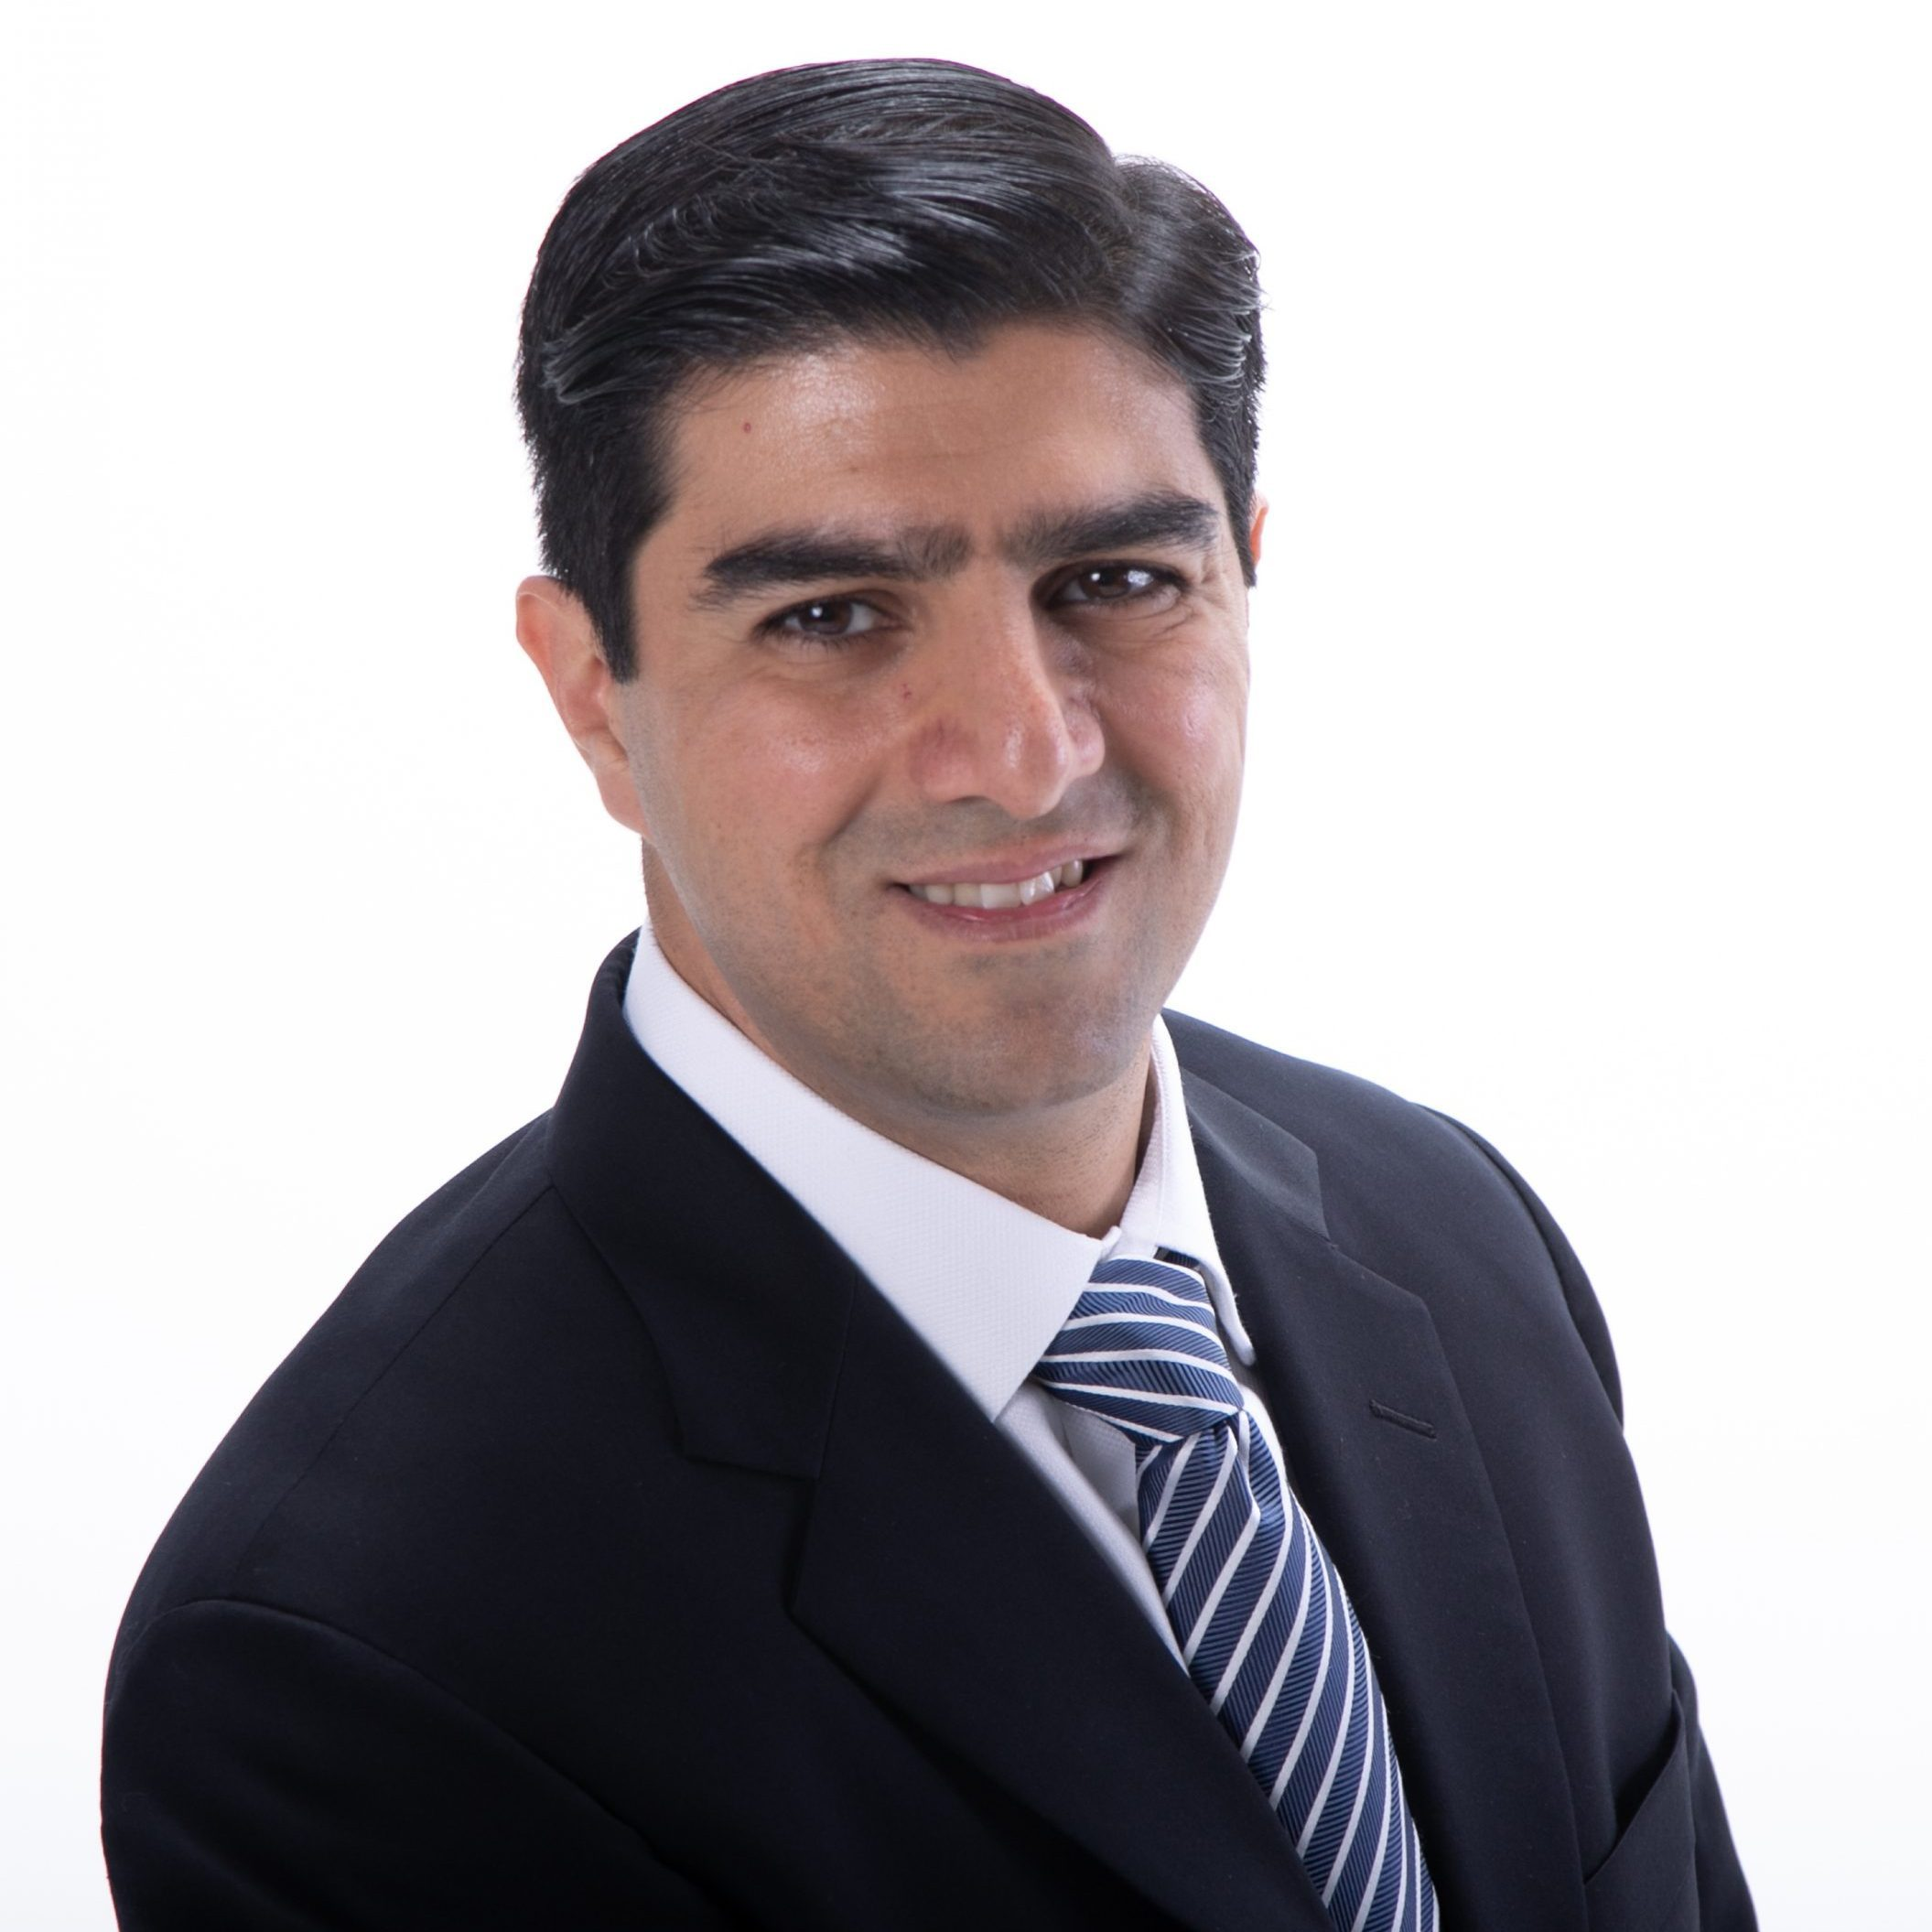 Arash Soheili loves building technology to help car buyers!